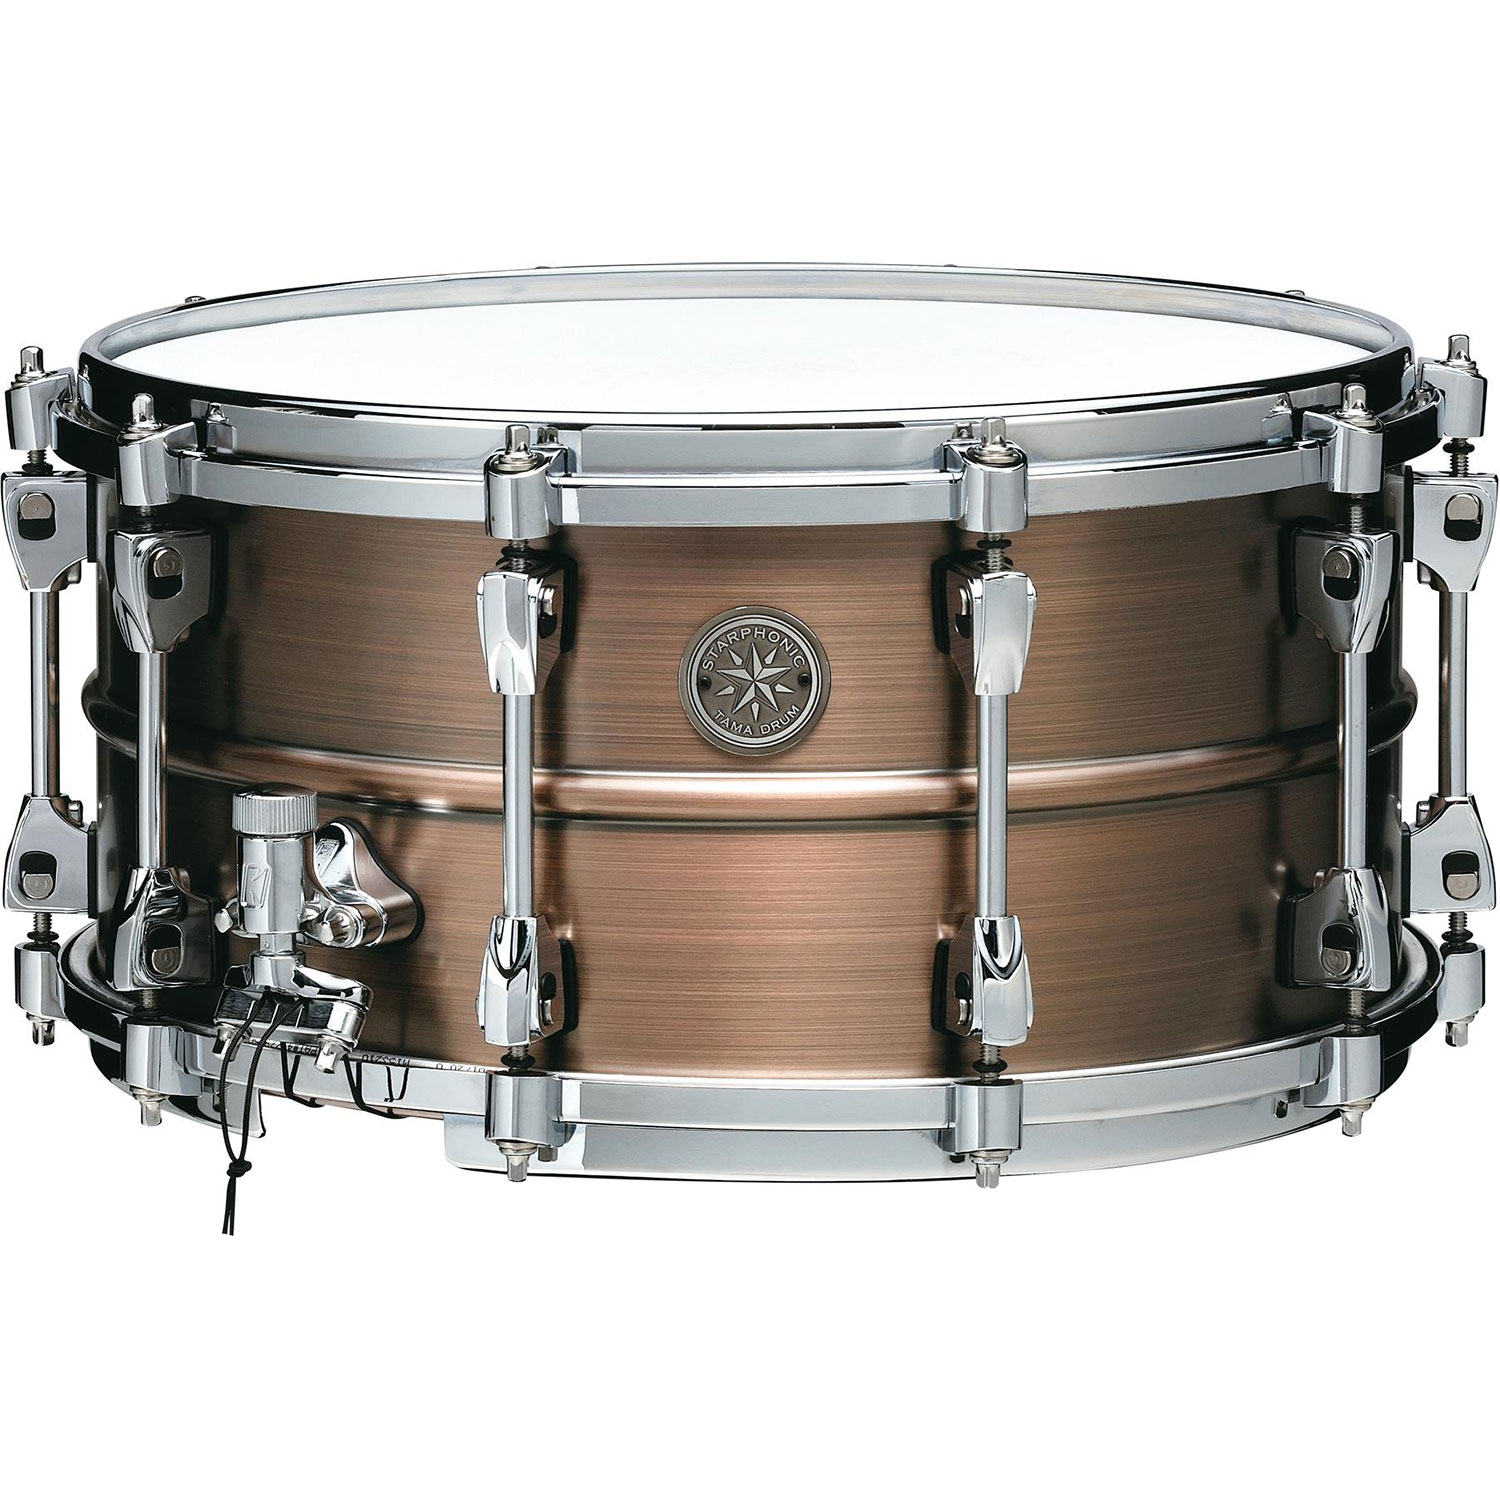 "Tama 7"" x 14"" Starphonic 1.2mm Copper Snare Drum in Satin Hairline Finish"